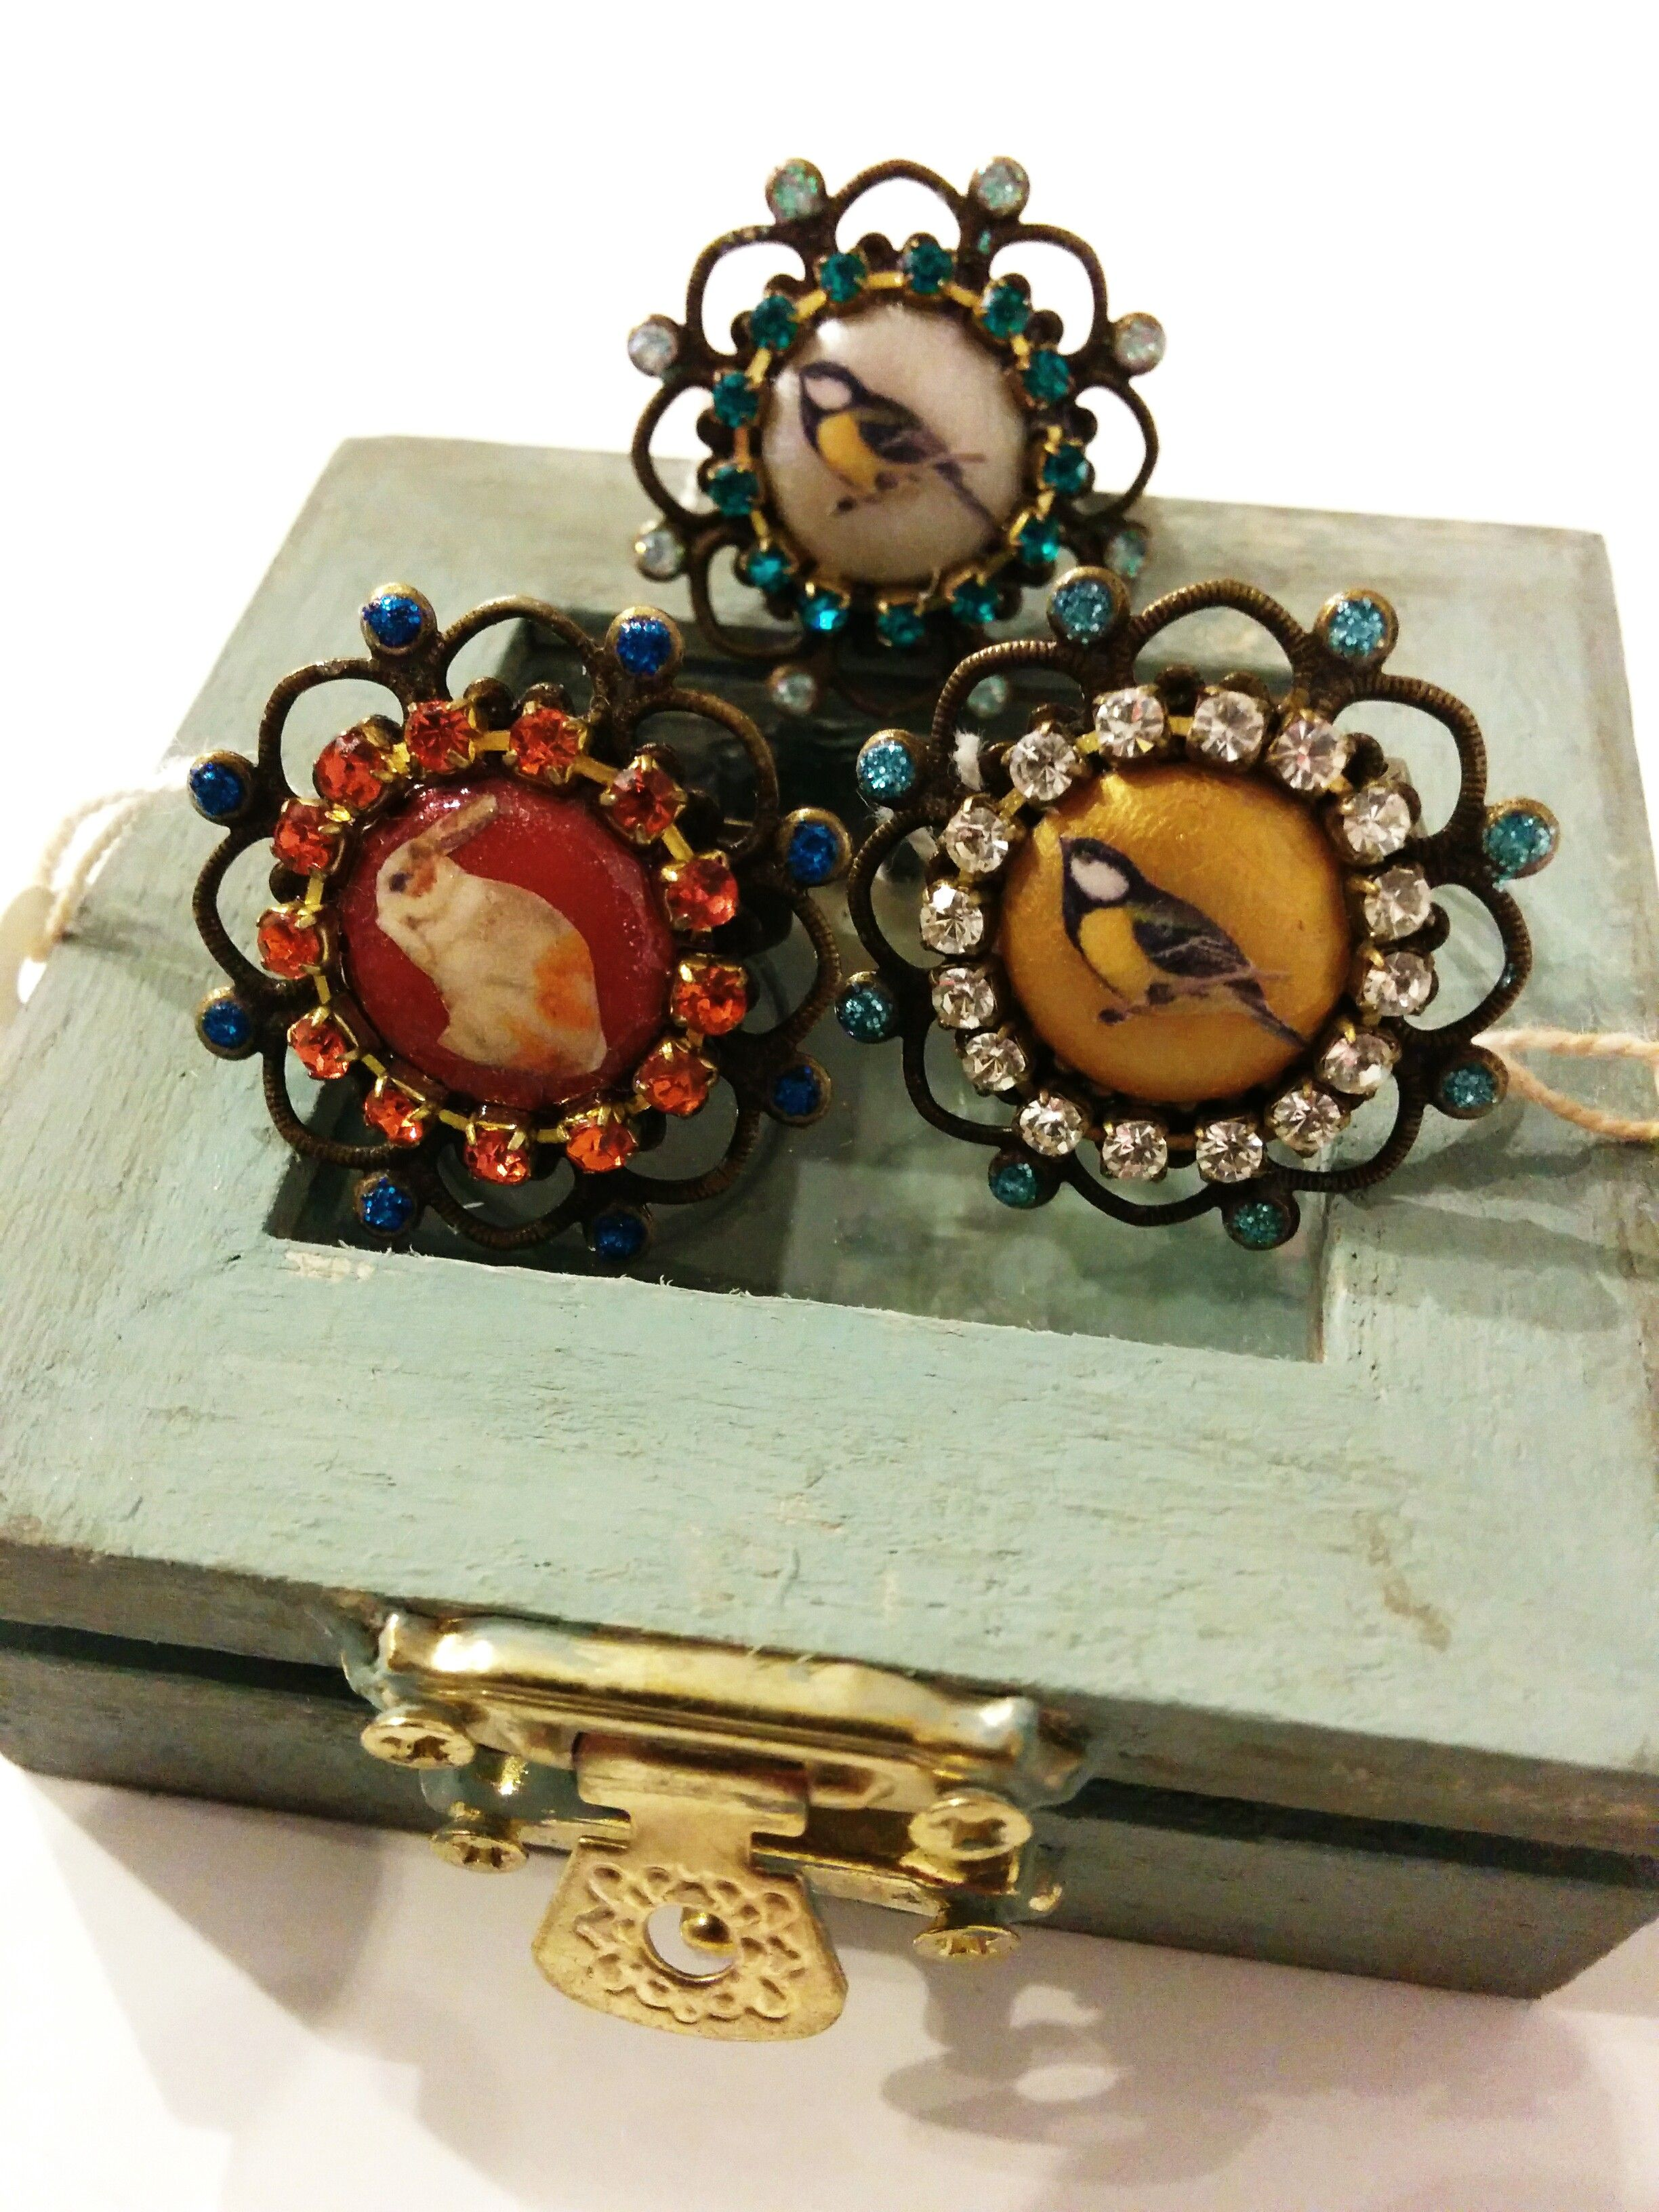 Shabby Chic Handmade Ornate Rings By Handmade By Yasmin Bochi Jewellery Collection Available At Things British